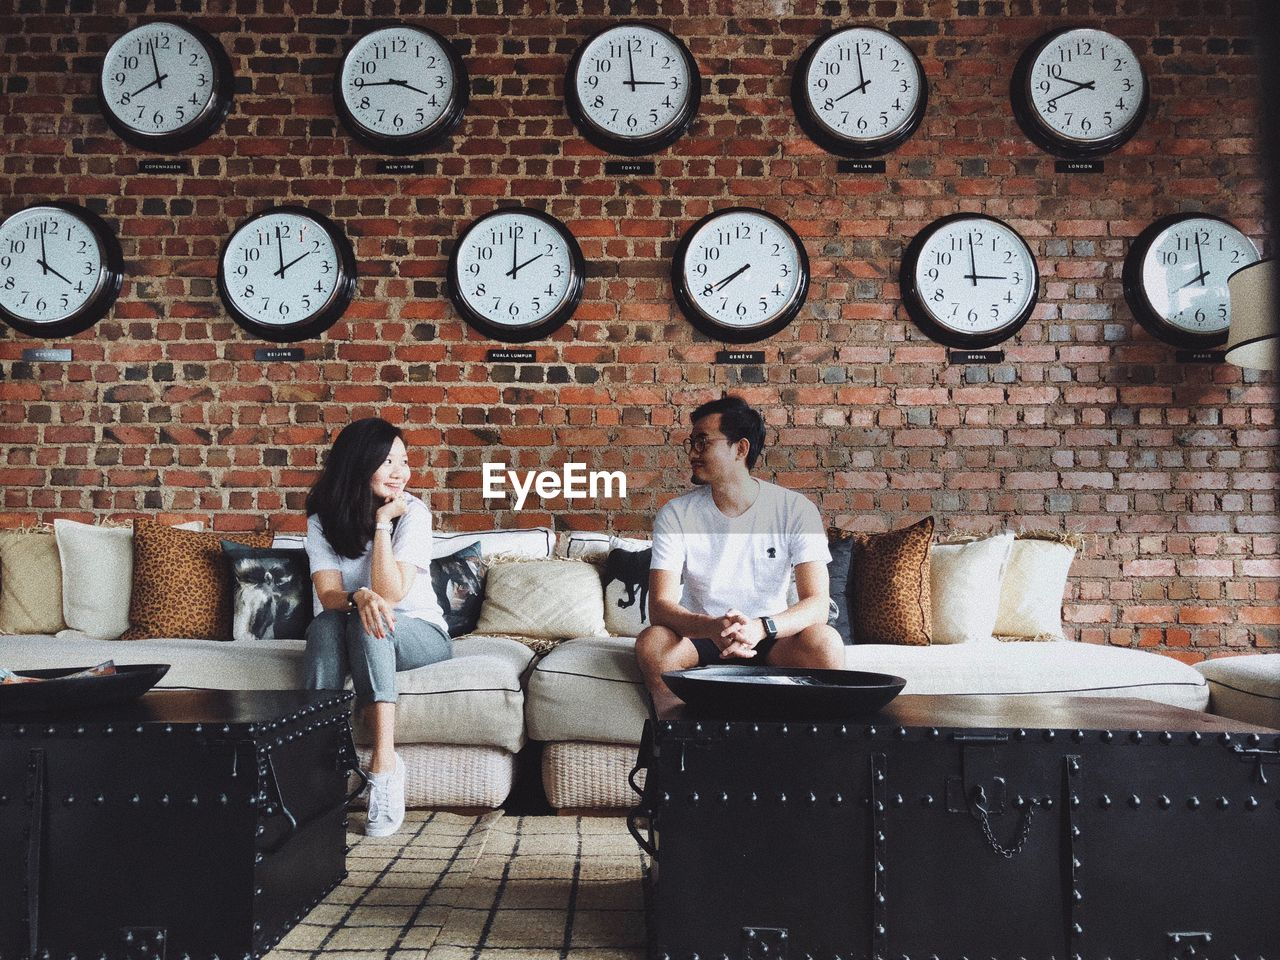 Couple sitting on sofa against wall clocks